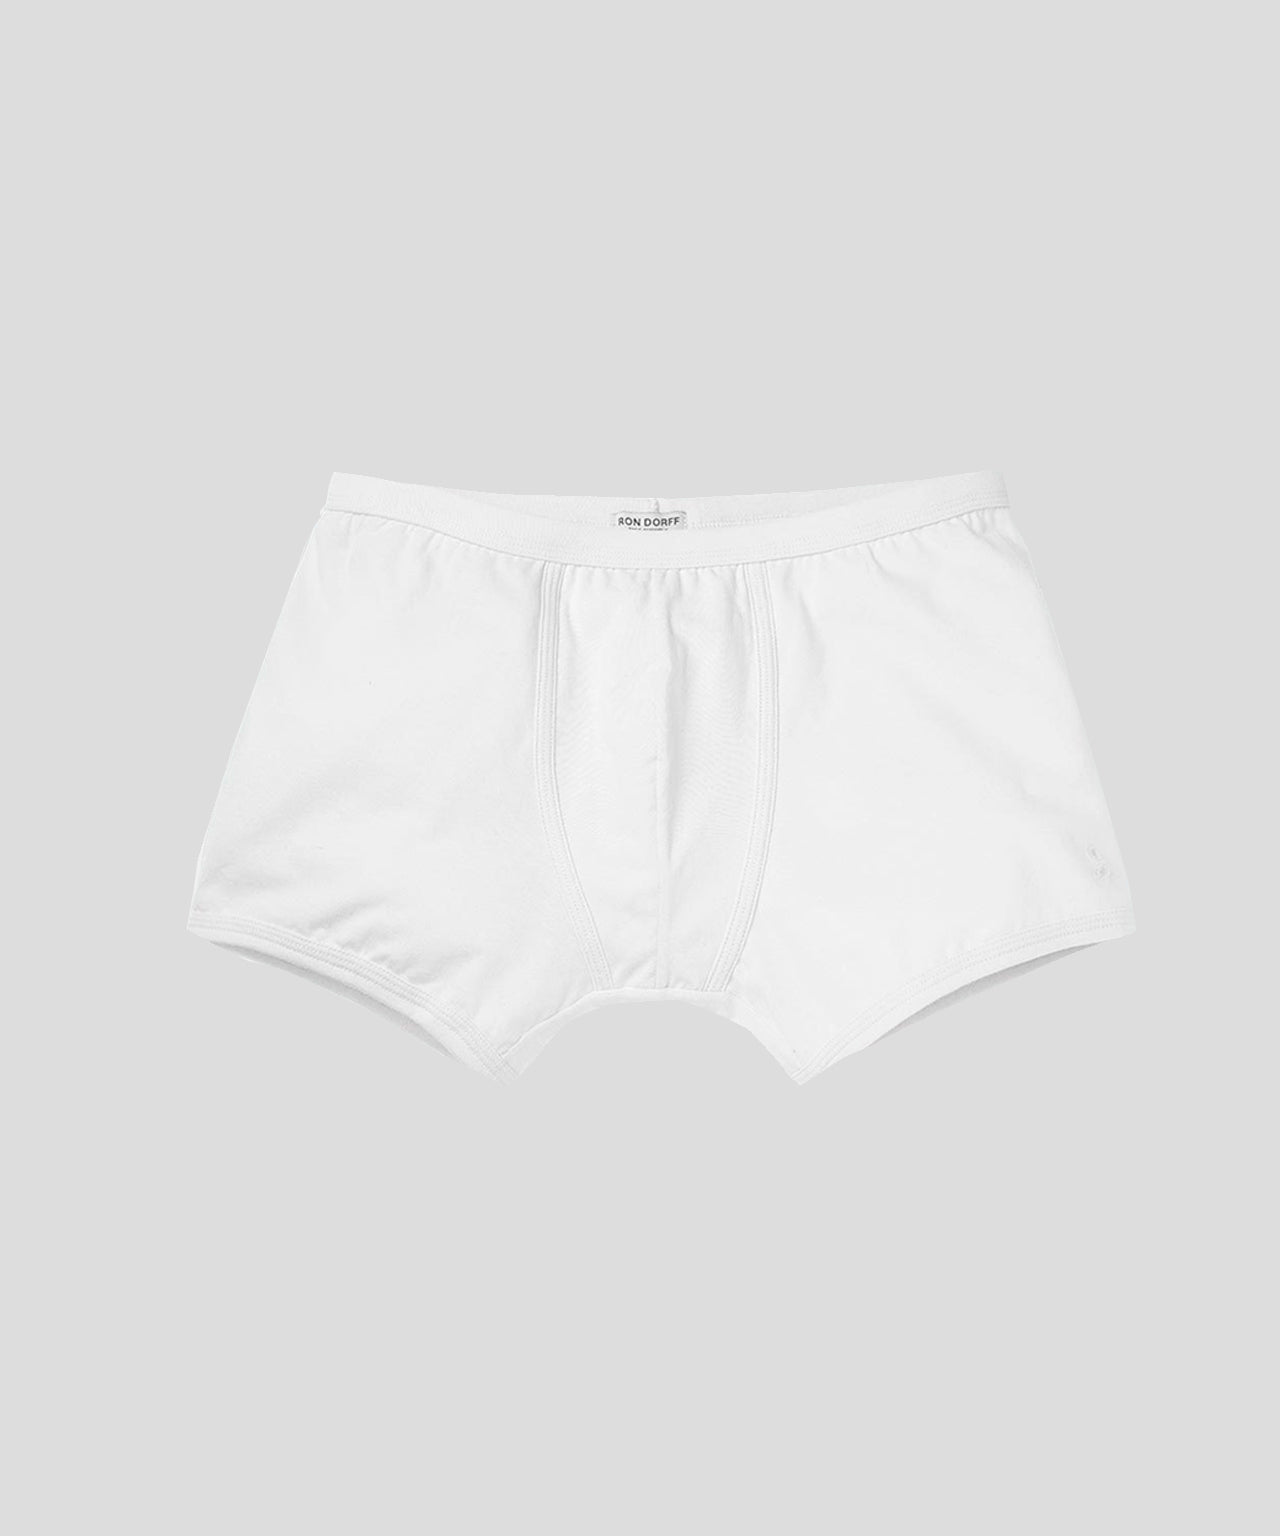 747 Boxer Briefs Classic Kit - white